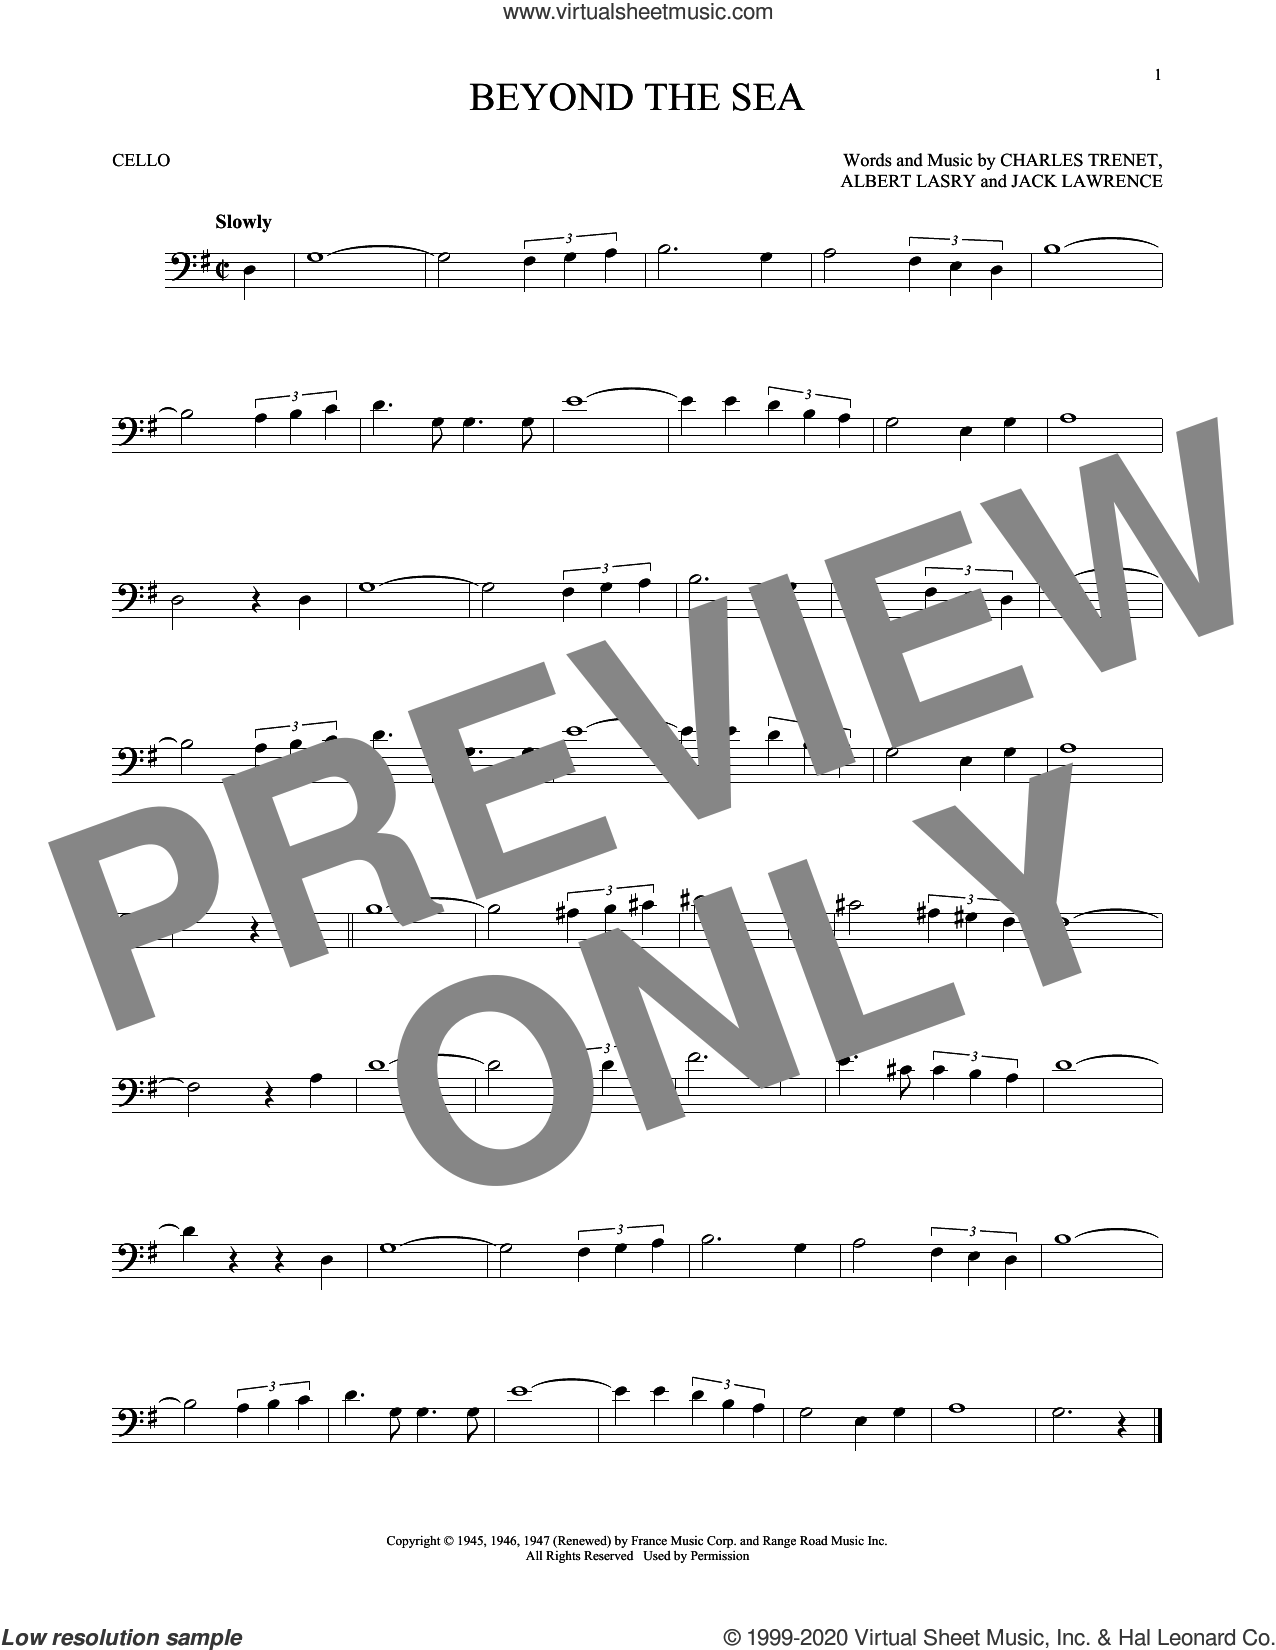 Beyond The Sea sheet music for cello solo by Bobby Darin, Roger Williams, Albert Lasry, Charles Trenet and Jack Lawrence, intermediate skill level